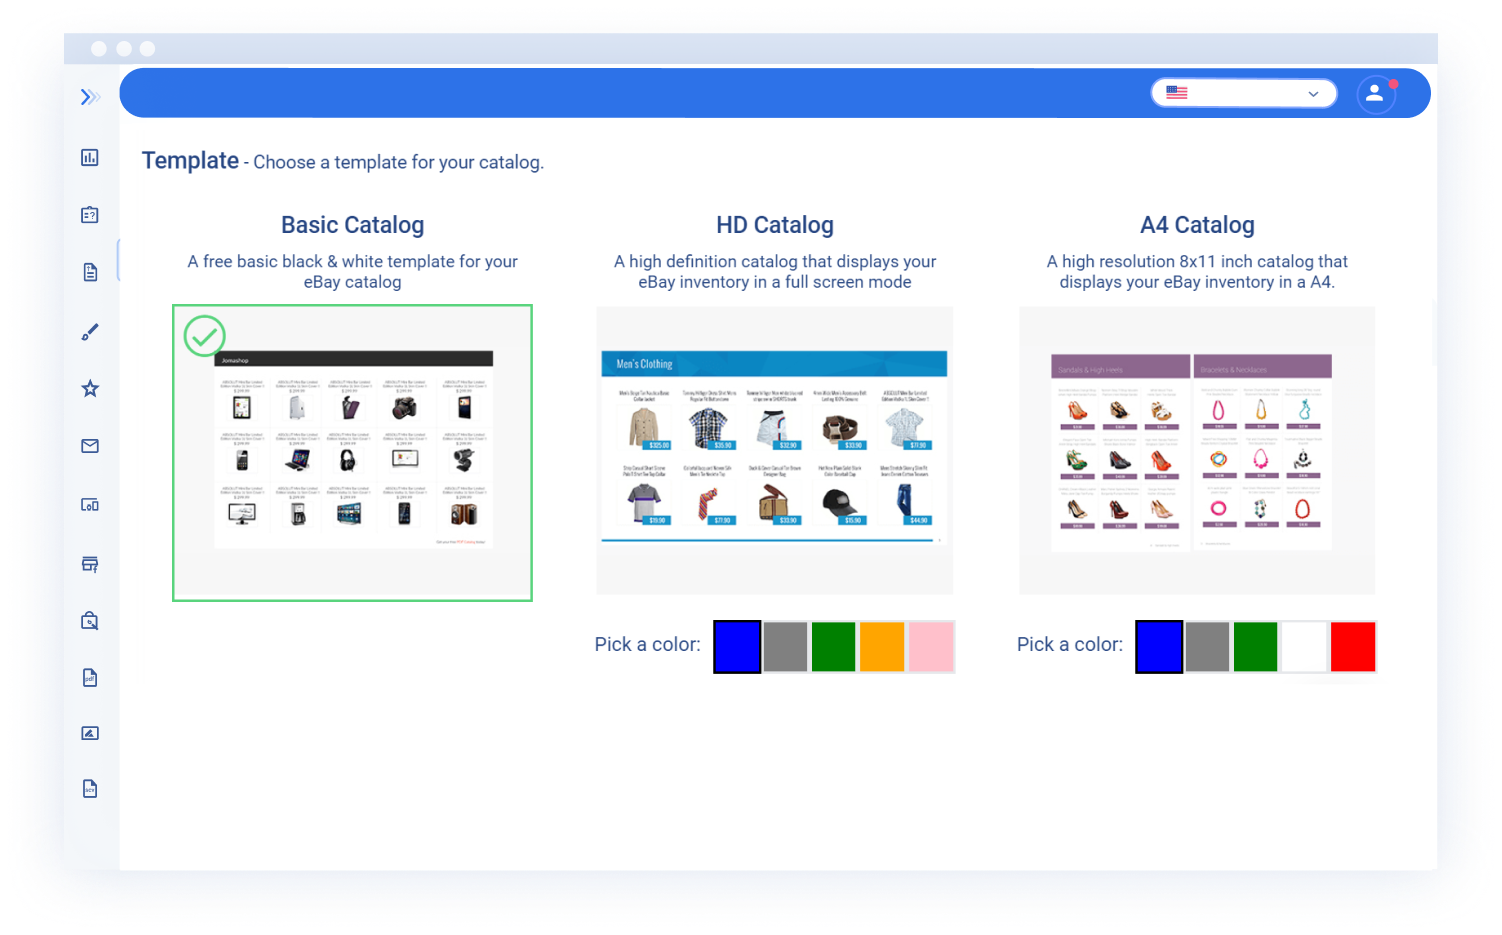 Automate eBay Offers and Turn Watchers Into Buyers